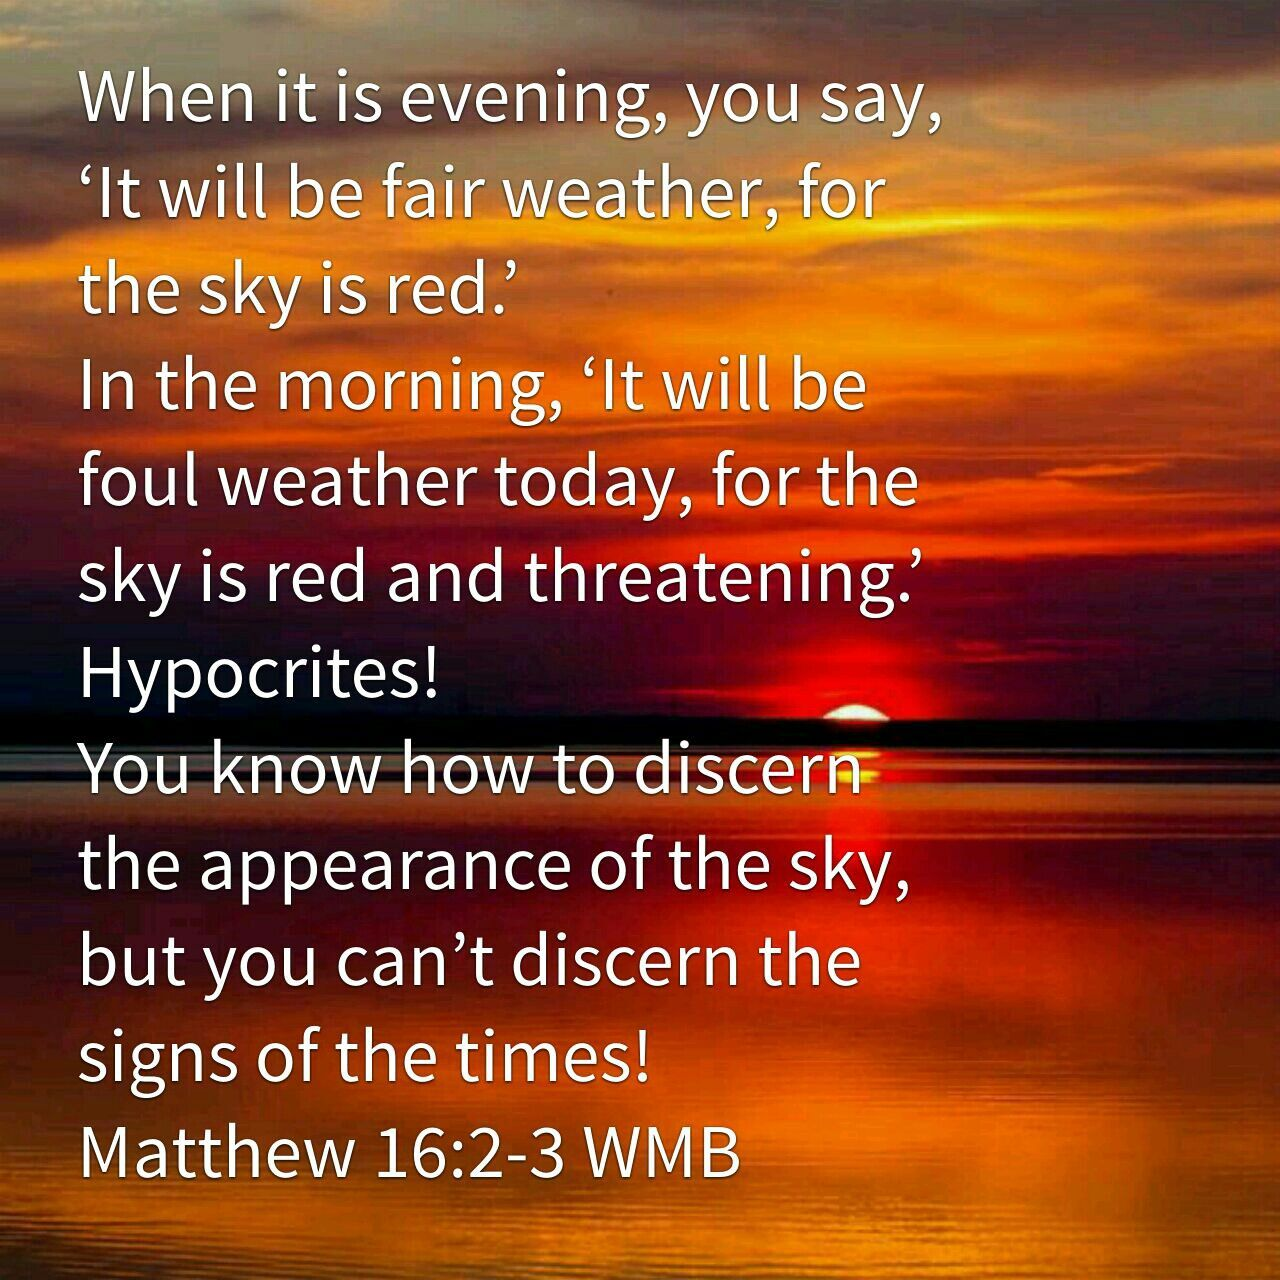 Matthew 16:2-3 WMB | Scripture quotes, Picture quotes, Sayings